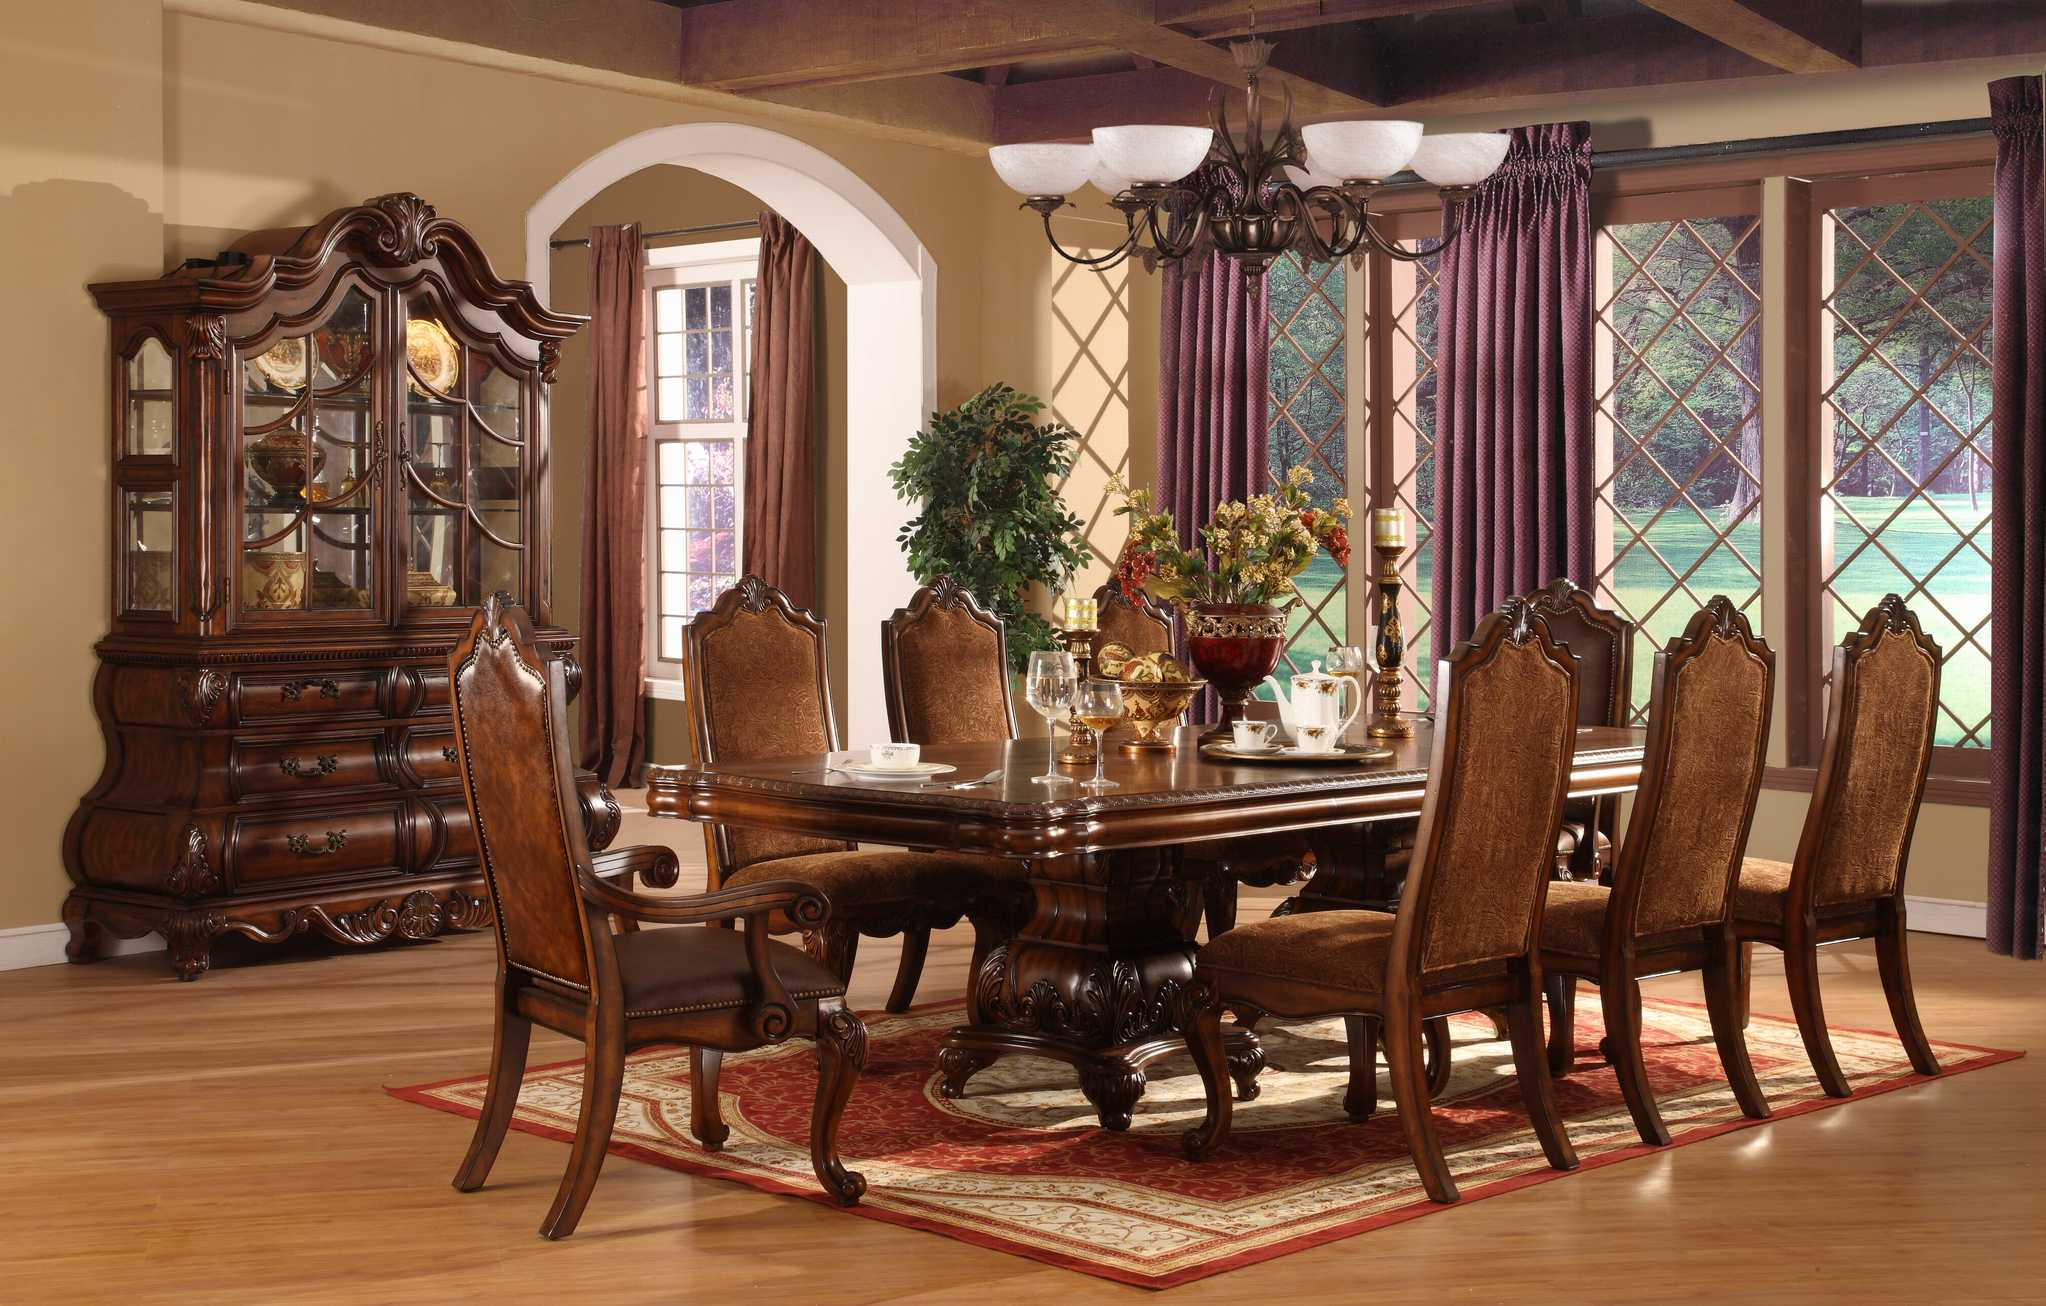 Perfect formal dining room sets for 8 homesfeed for Dining room suites images